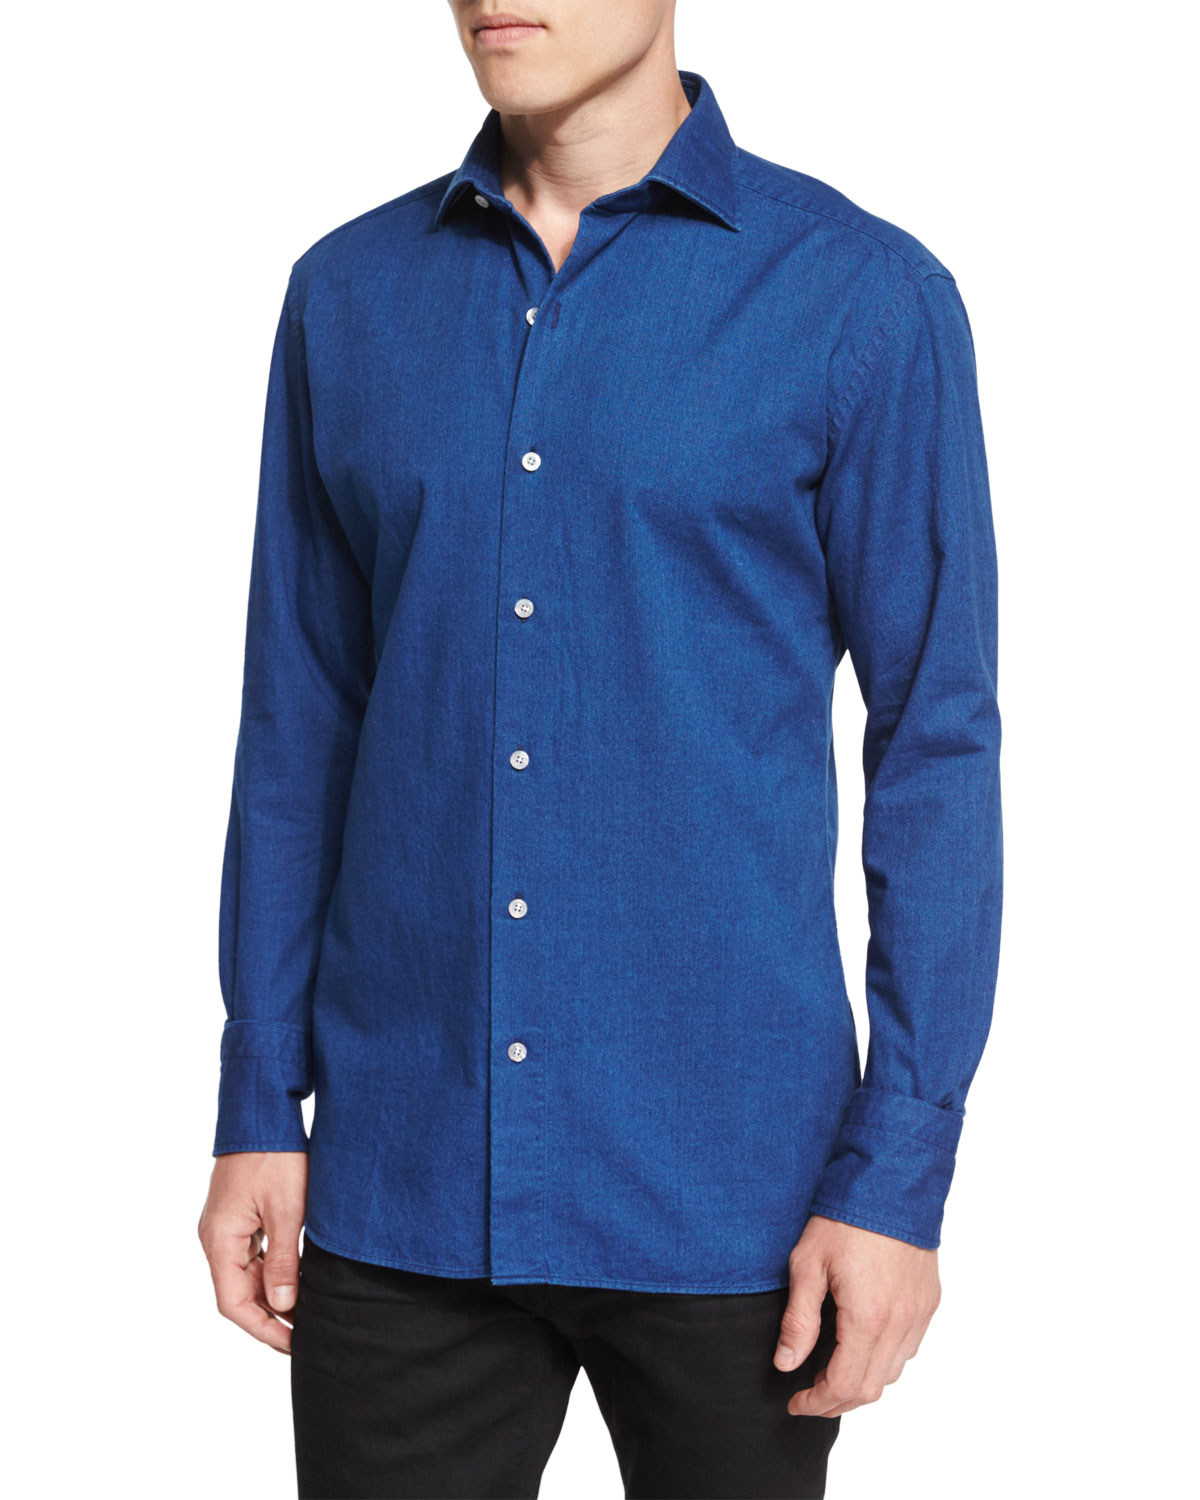 Long-Sleeve Lightweight Denim Shirt